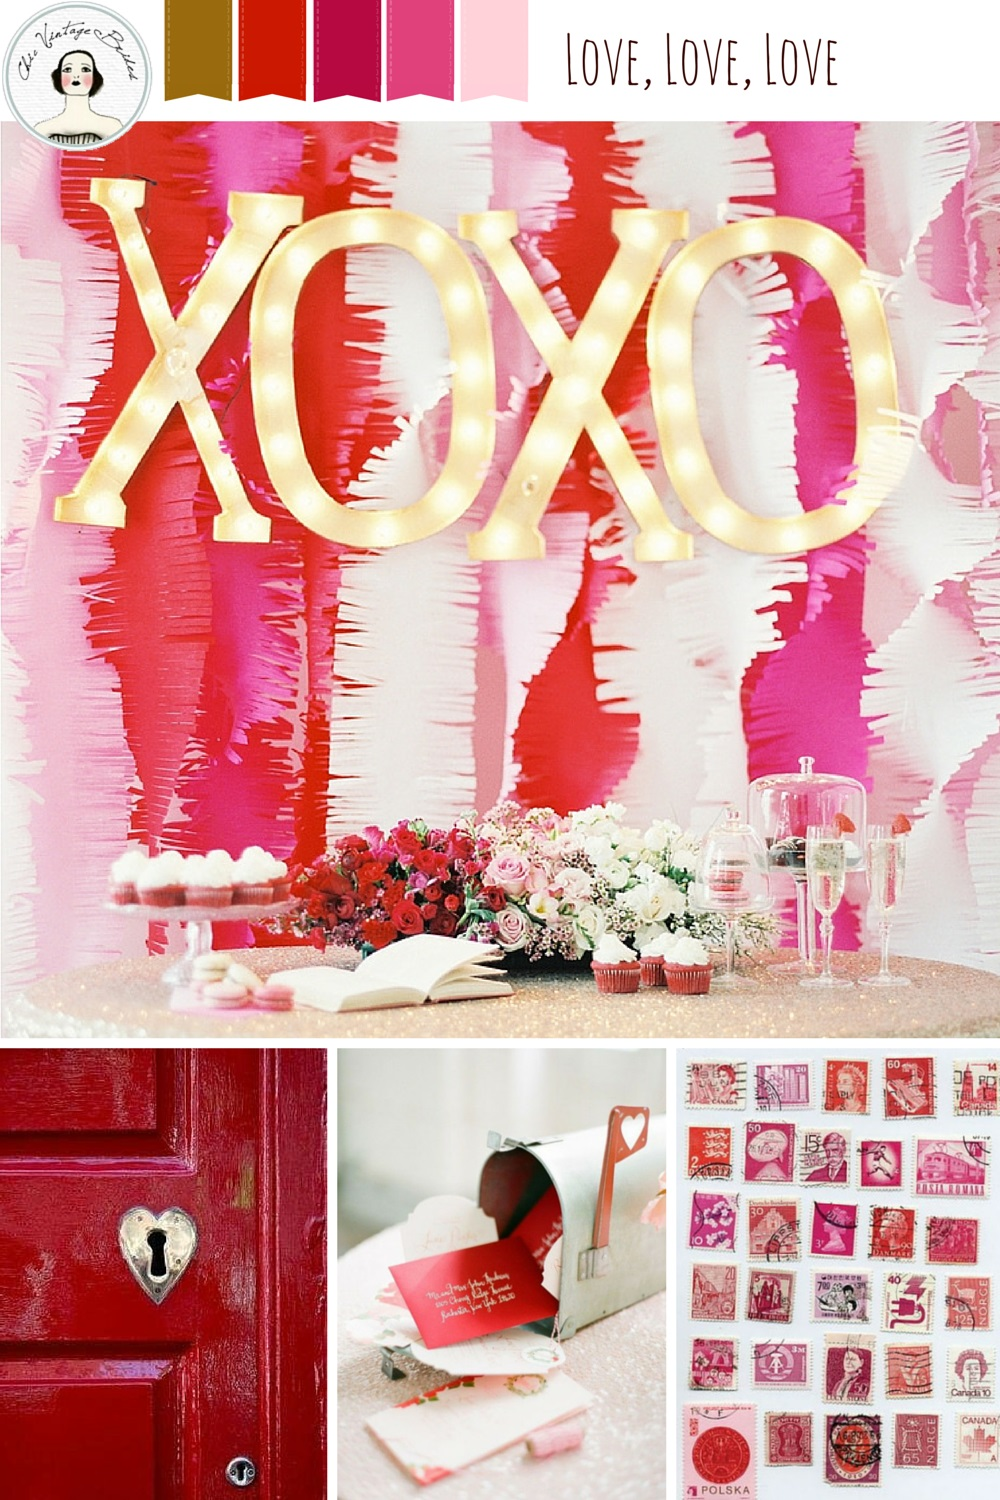 Love, love, love Valentines Mood Board